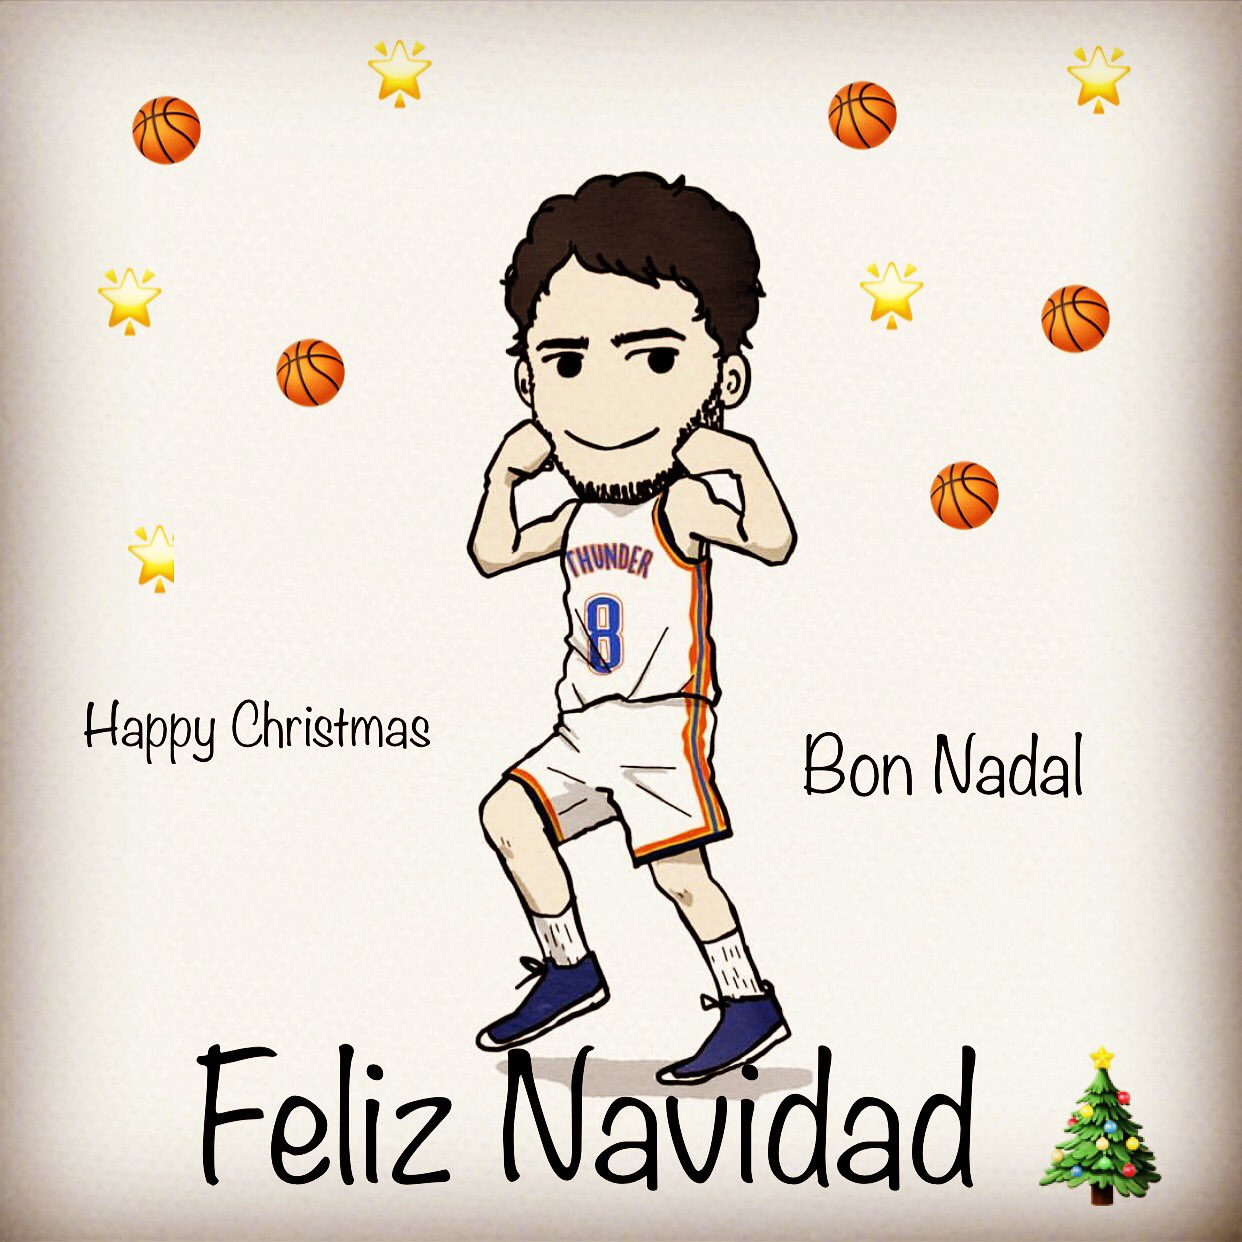 Feliz Navidad, Bon Nadal and Merry Christmas